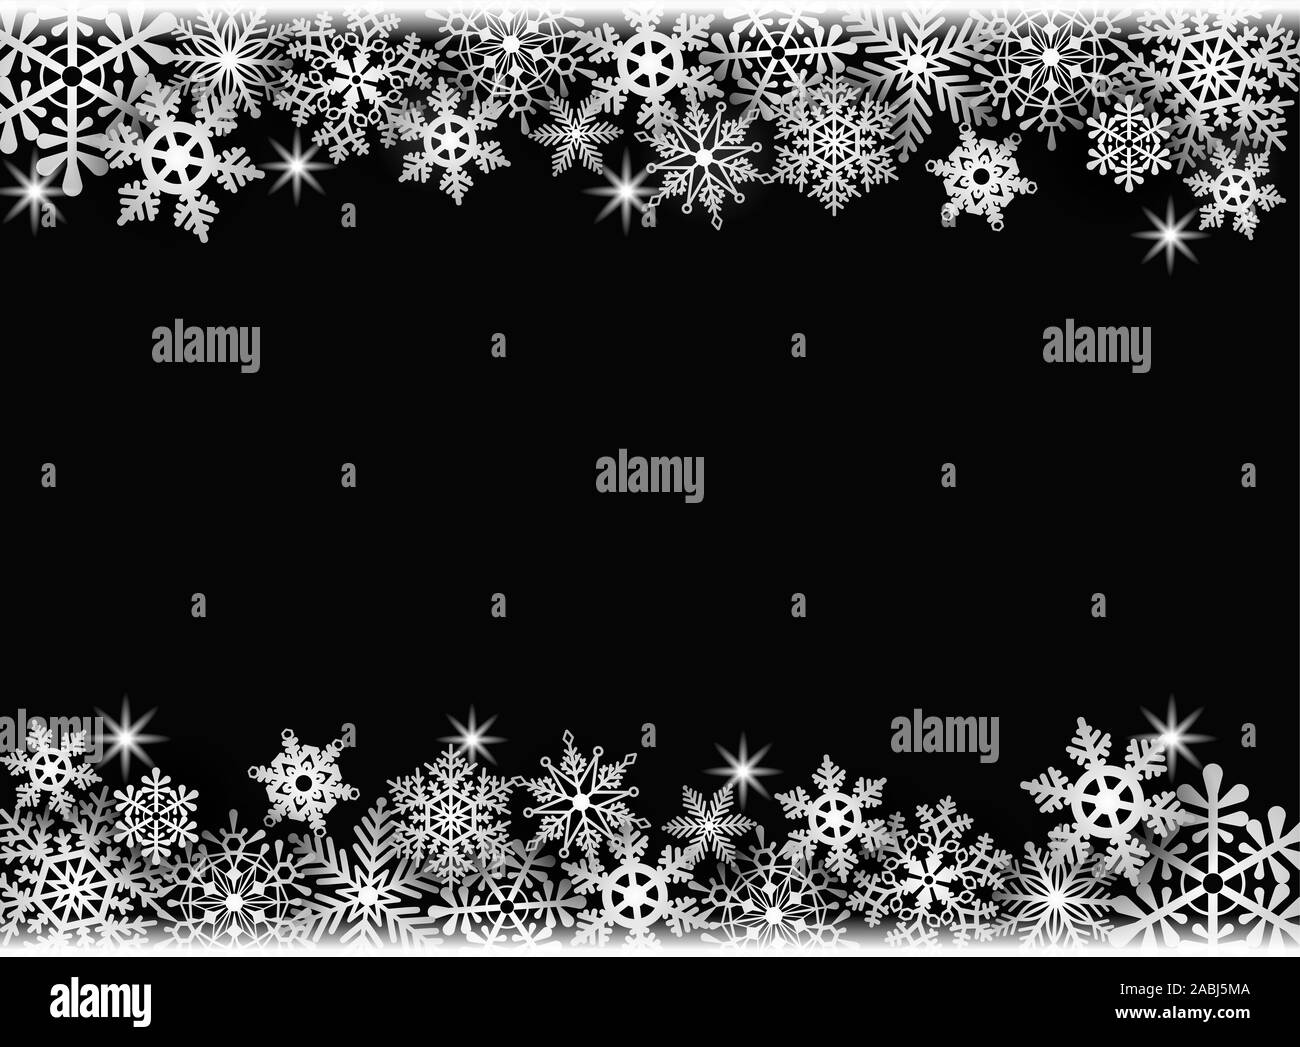 christmas background frame with snowflakes 2ABJ5MA